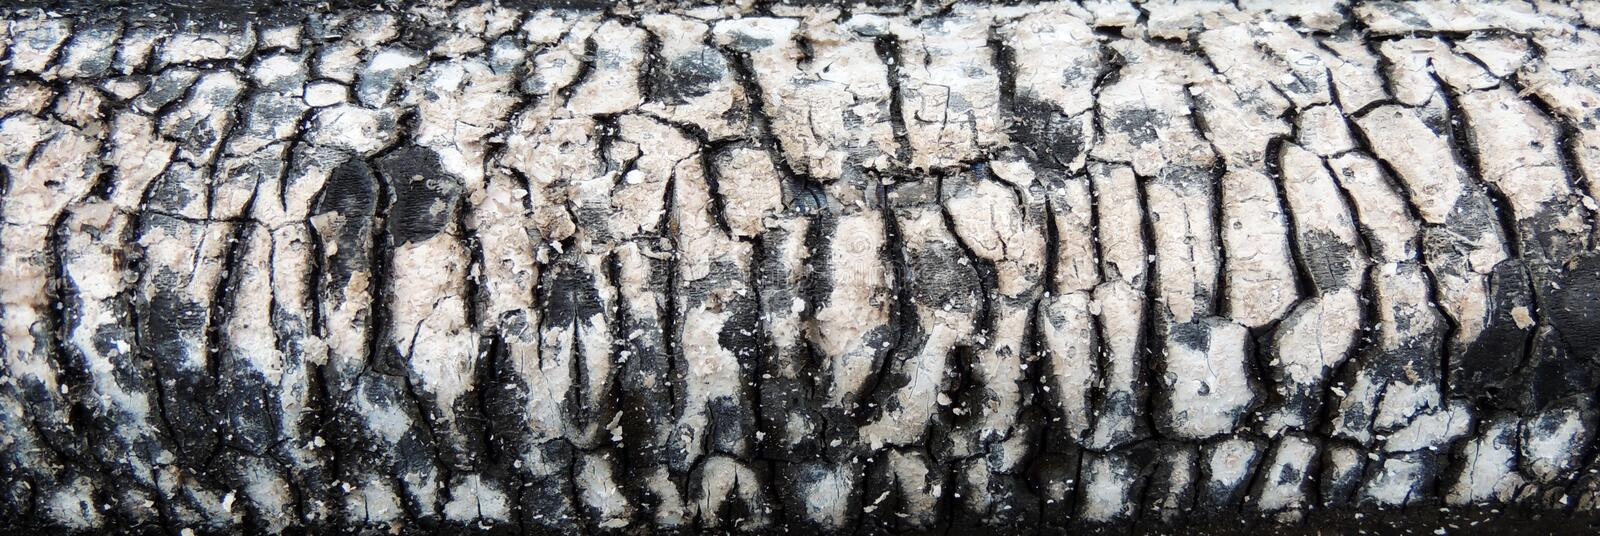 Download Charred piece of wood stock photo. Image of burnt, burn - 31475974